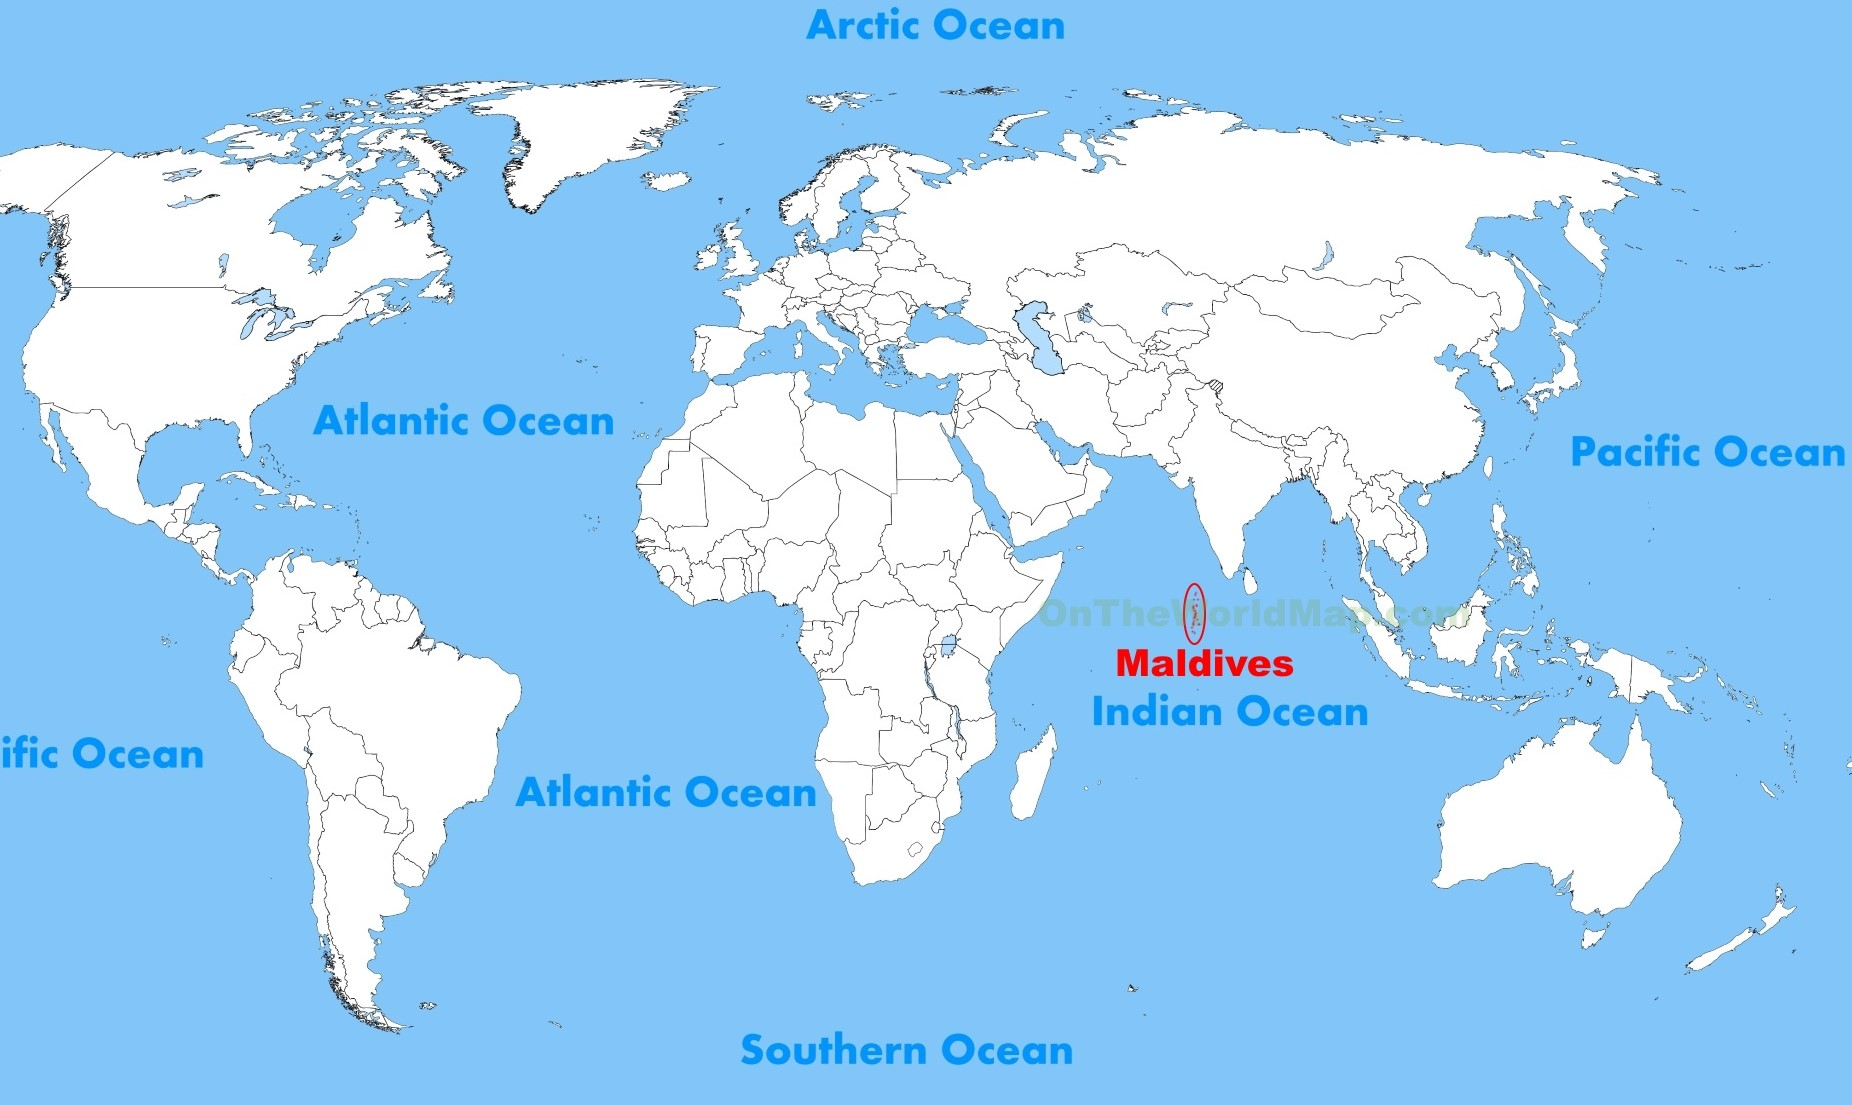 Where are the Maldives? - The Maldives Expert on business map, maps map, land map, road map, geologic map, serengeti plain africa map, thematic map, climate map, topographical map, on a map, history map, european map, middle east resource map, science map, topological map, physical map, global map, geographic map, political map, physiographic map,